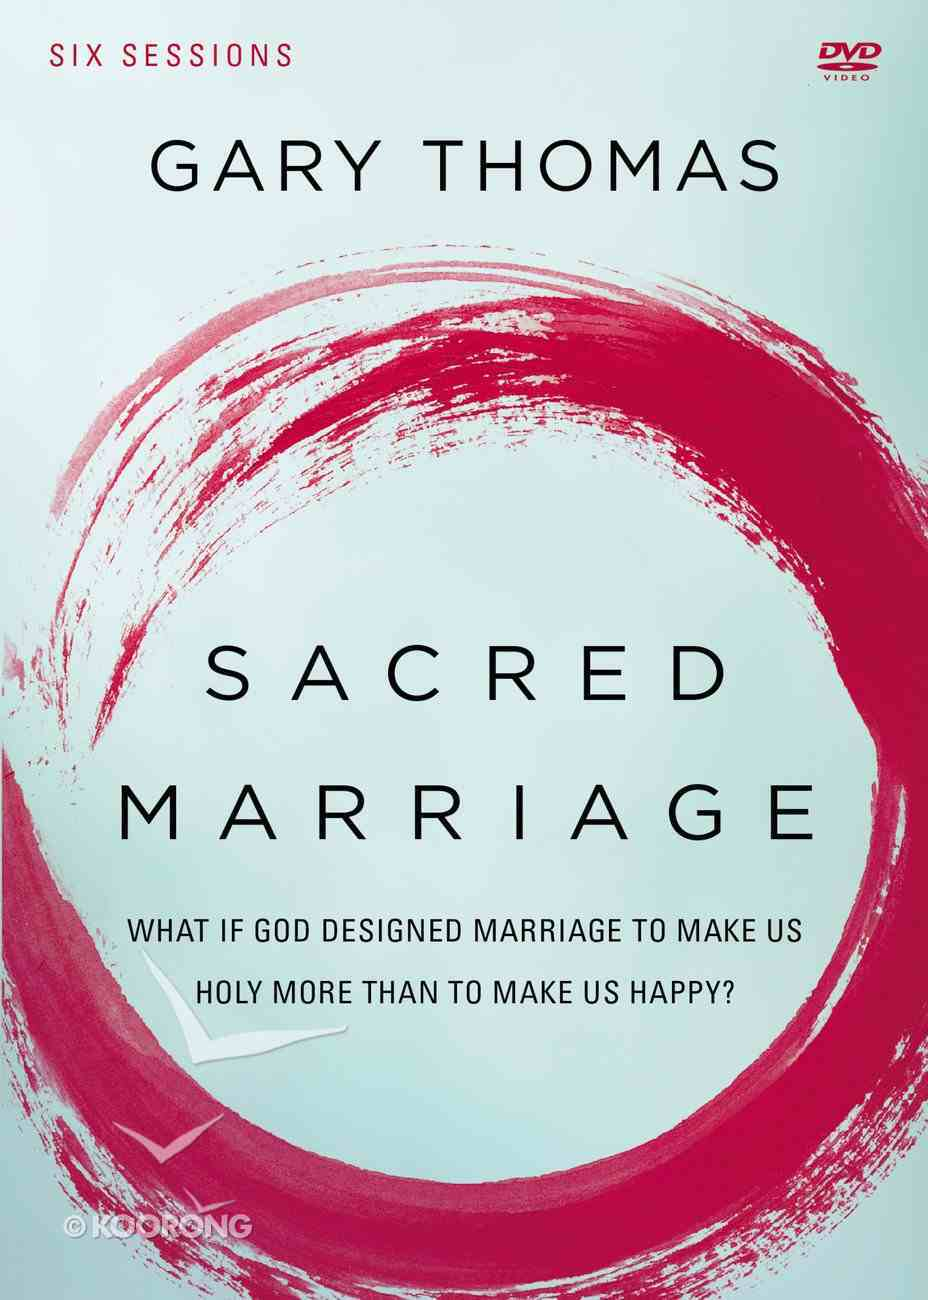 Sacred Marriage: What If God Designed Marriage to Make Us Holy More Than to Make Us Happy? (Dvd Study) DVD